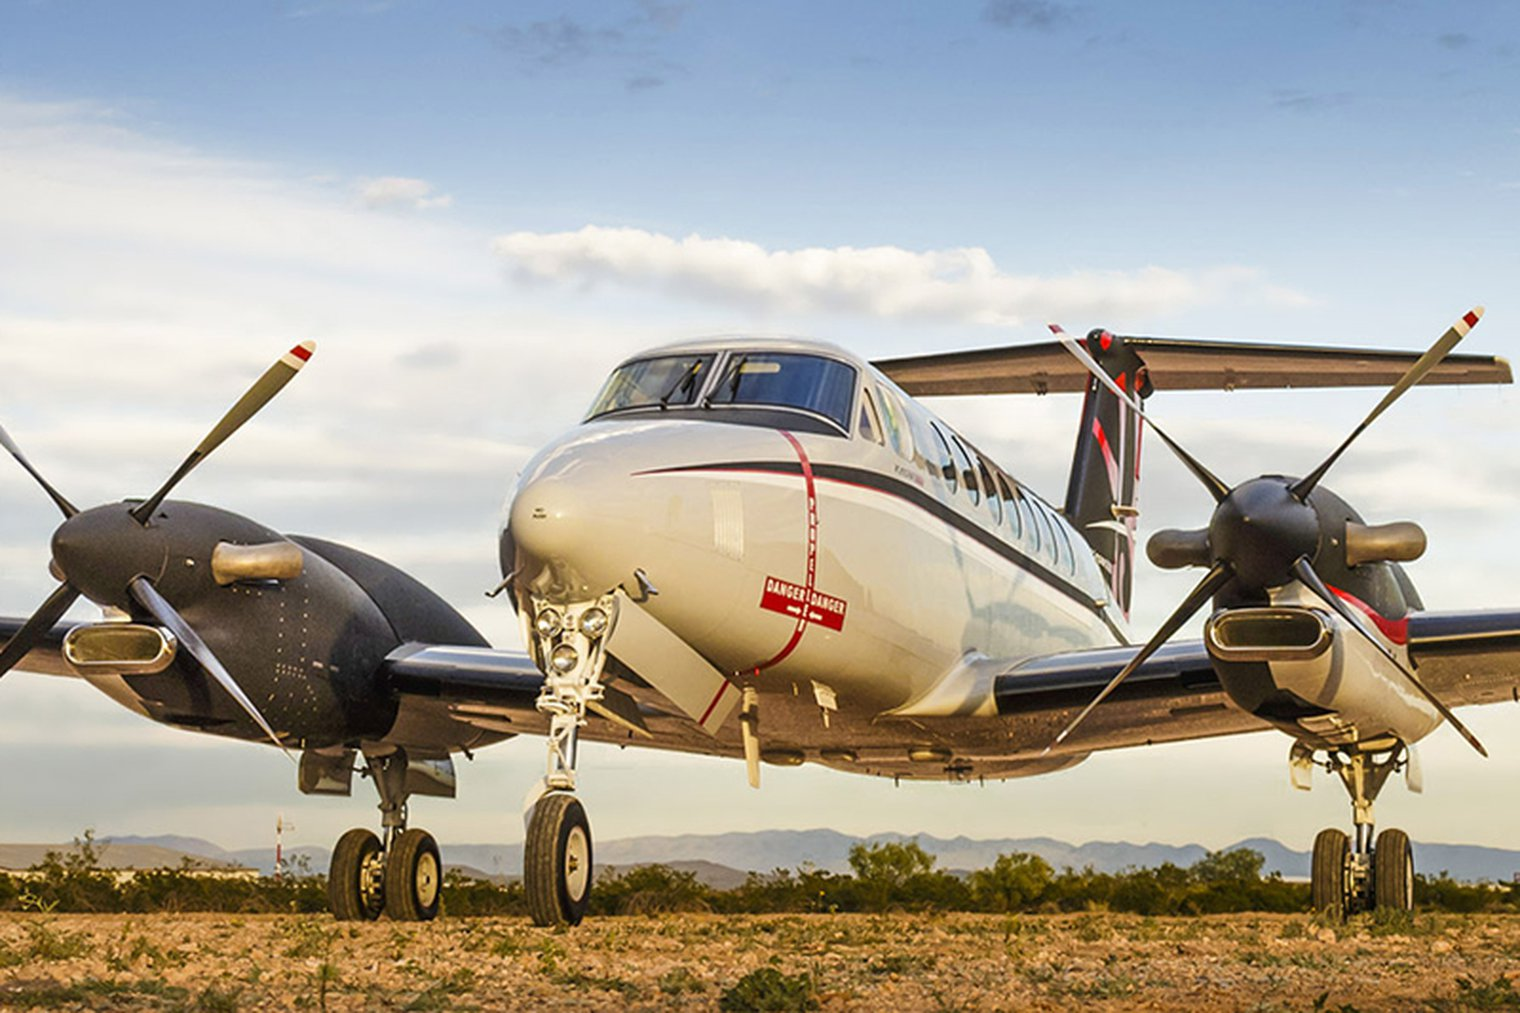 Military Vehicles For Sale Canada >> Canada requests King Air 350ER ISR aircraft - DB - Digital Battlespace - Shephard Media